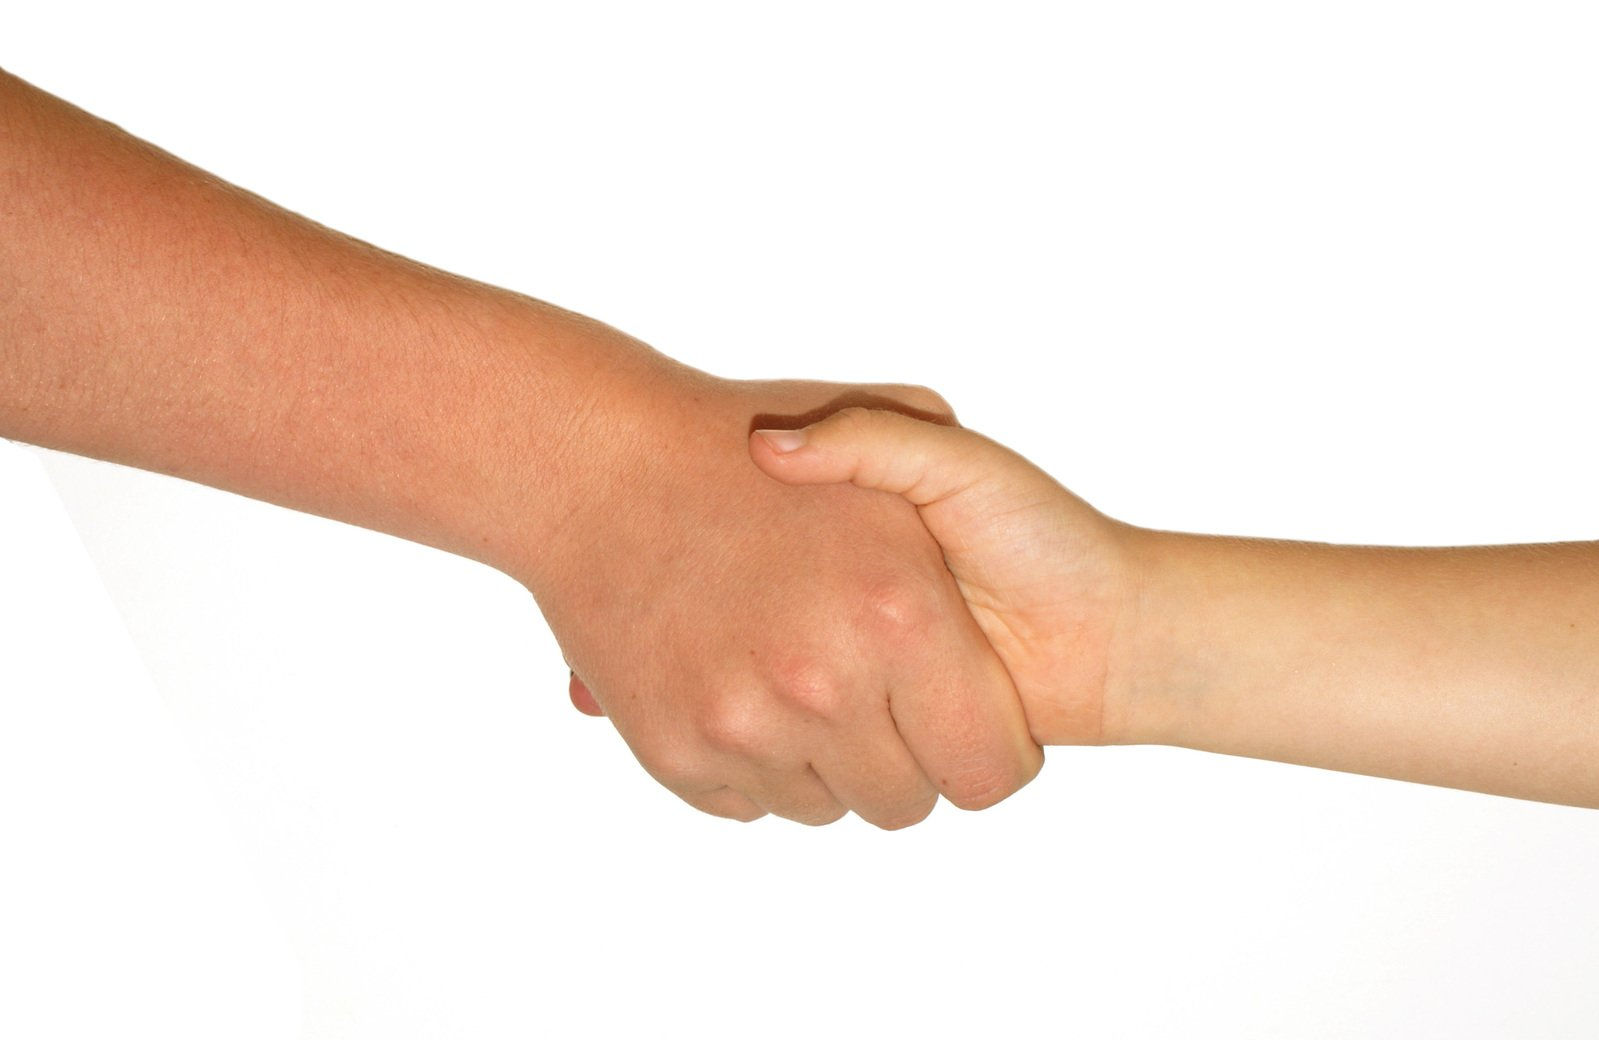 Shaking Hands, photo, #1238535 - FreeImages.com